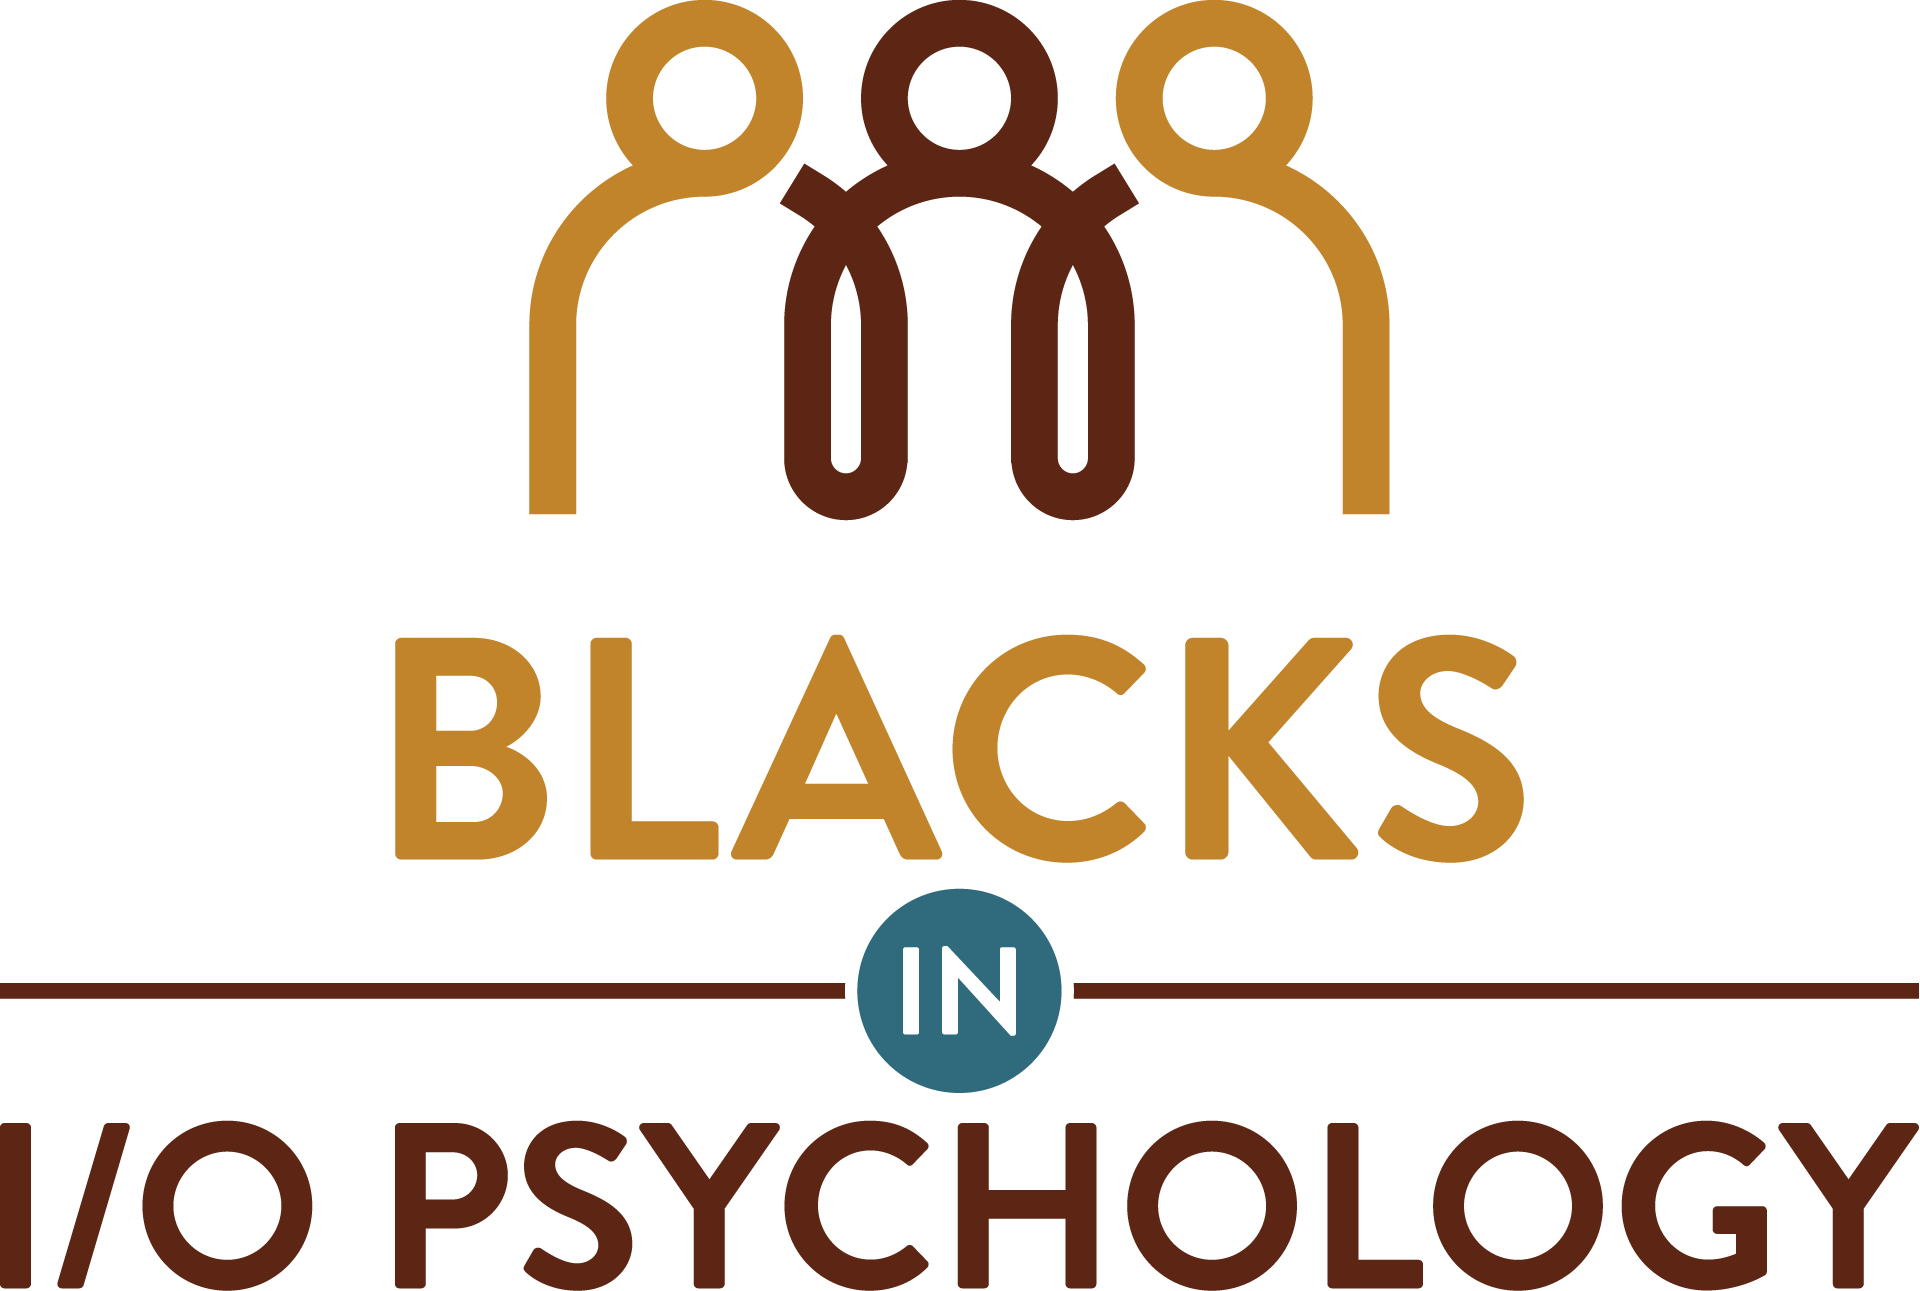 Blacks in I/O Psychology